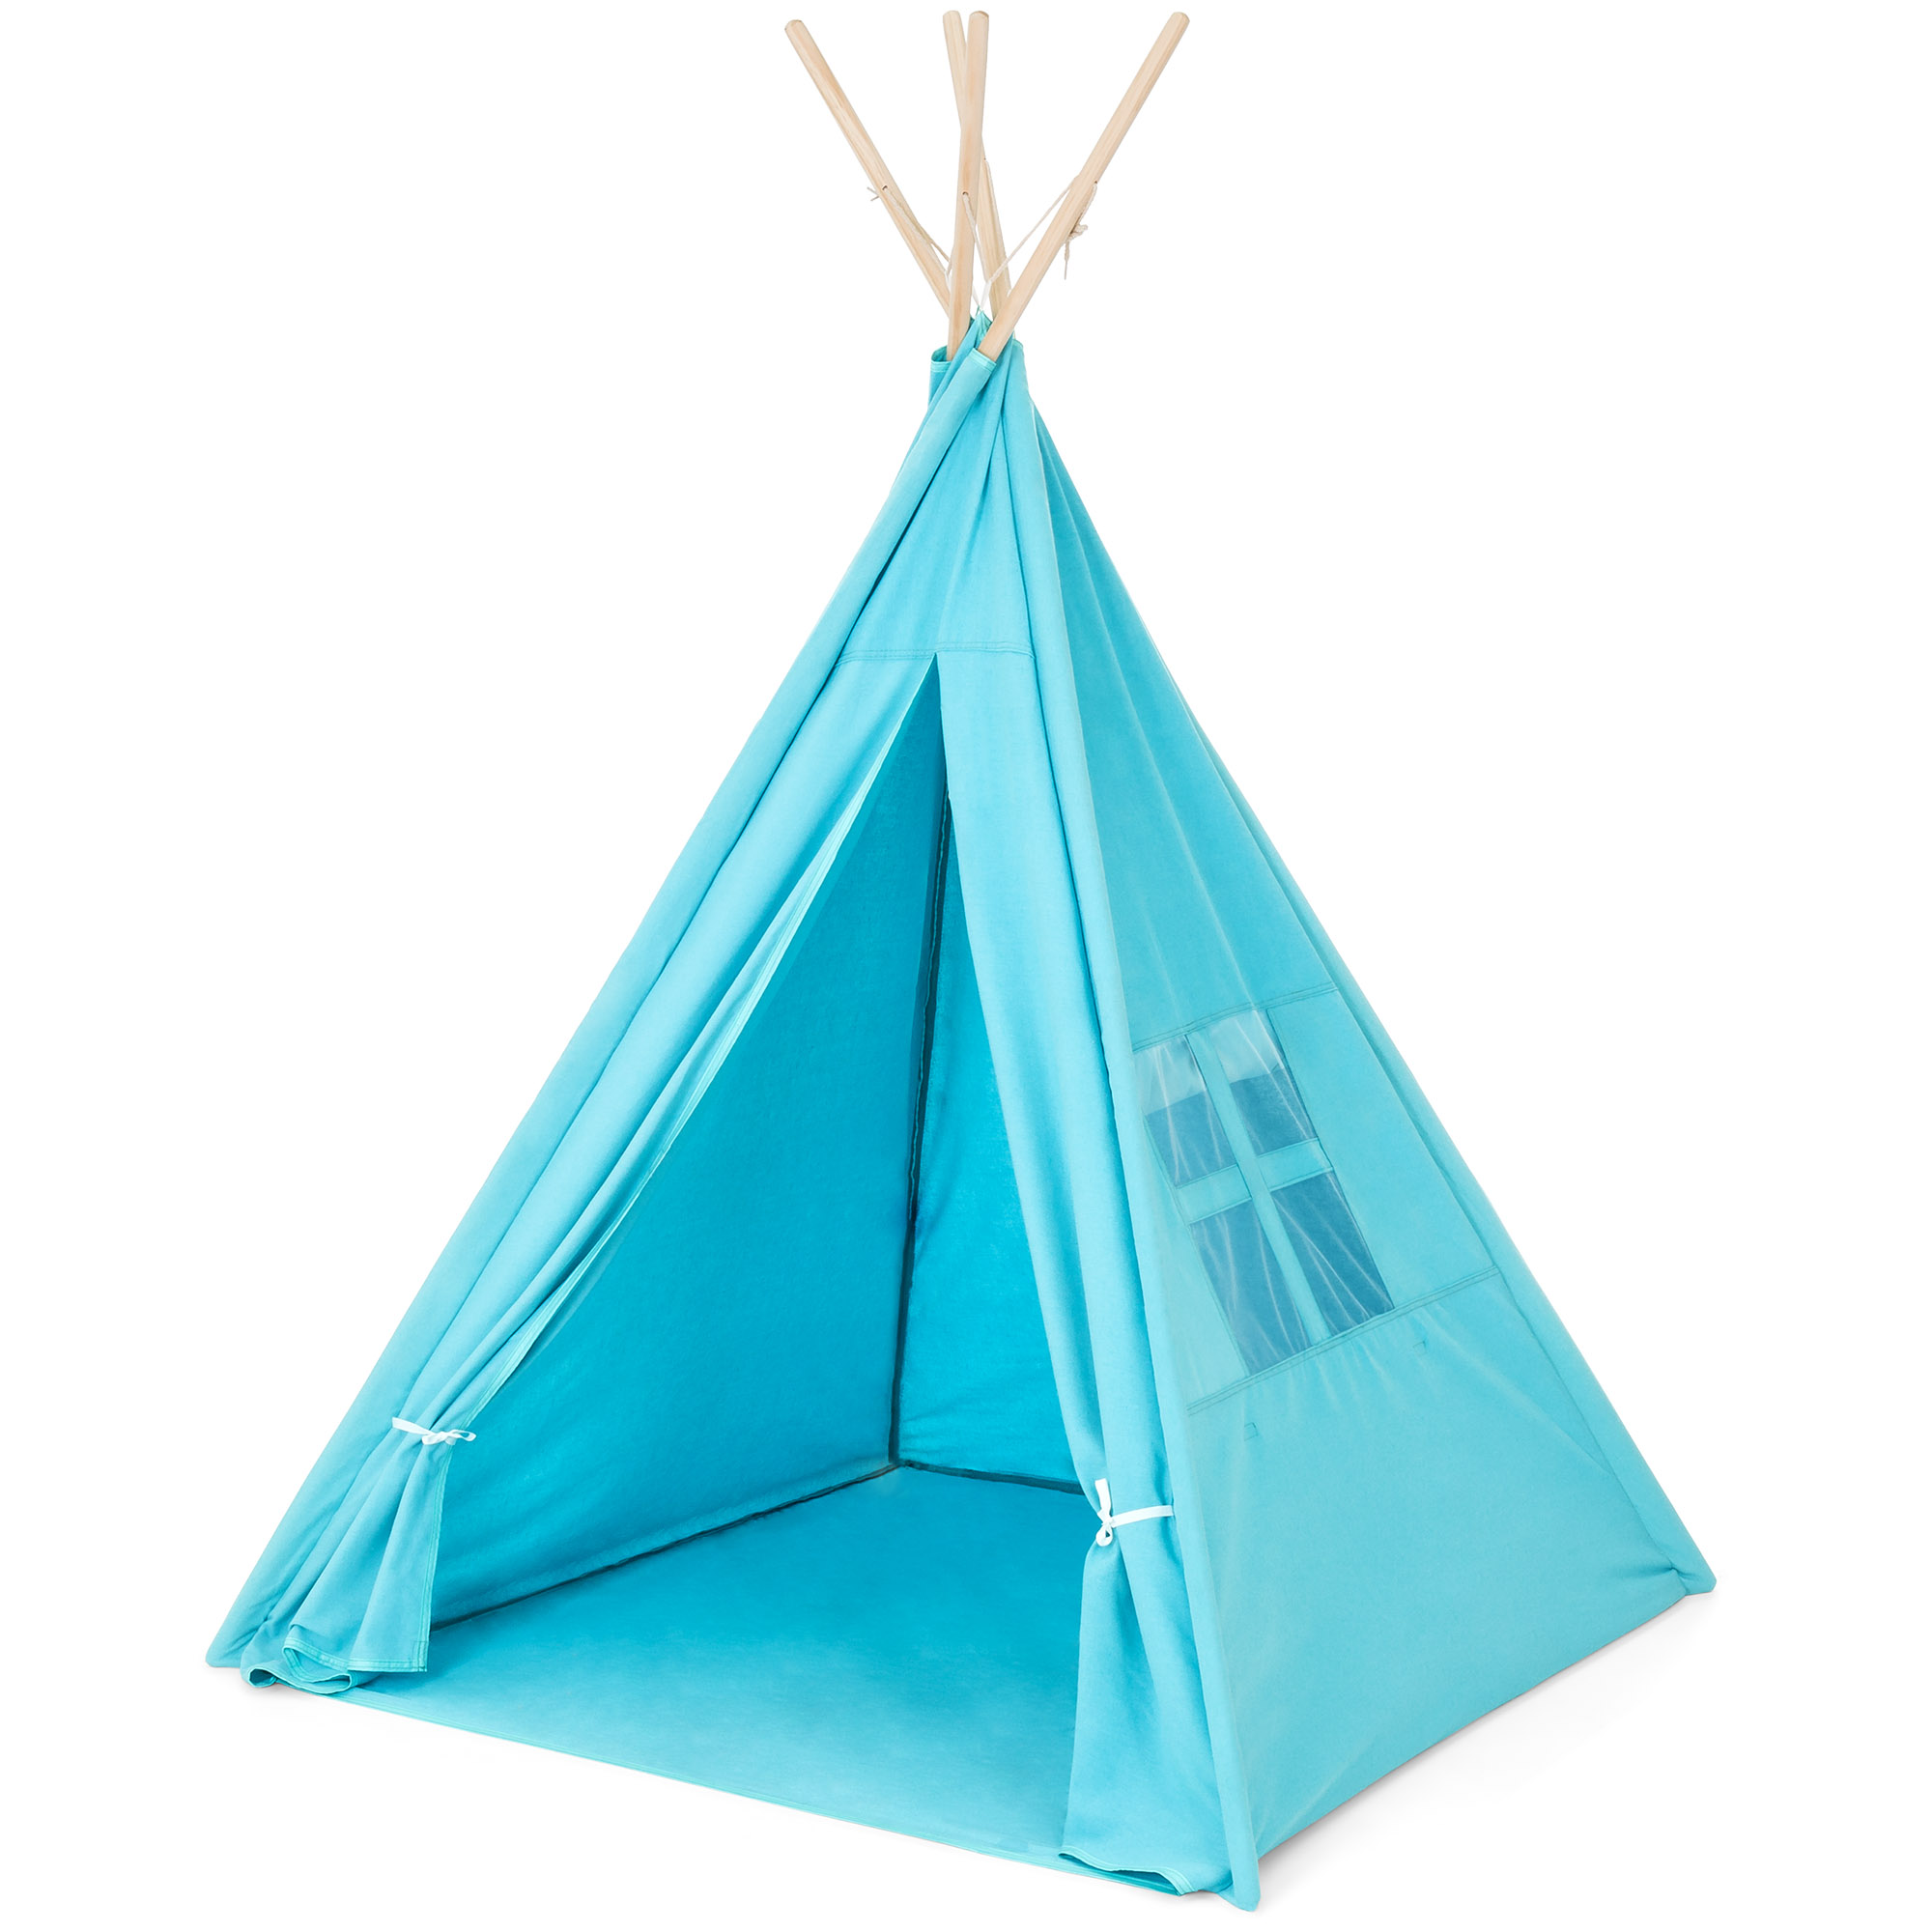 Best Choice Products 6ft Teepee Tent Kids Indian Canvas Playhouse Sleeping Dome w/ Carrying Bag (Blue)